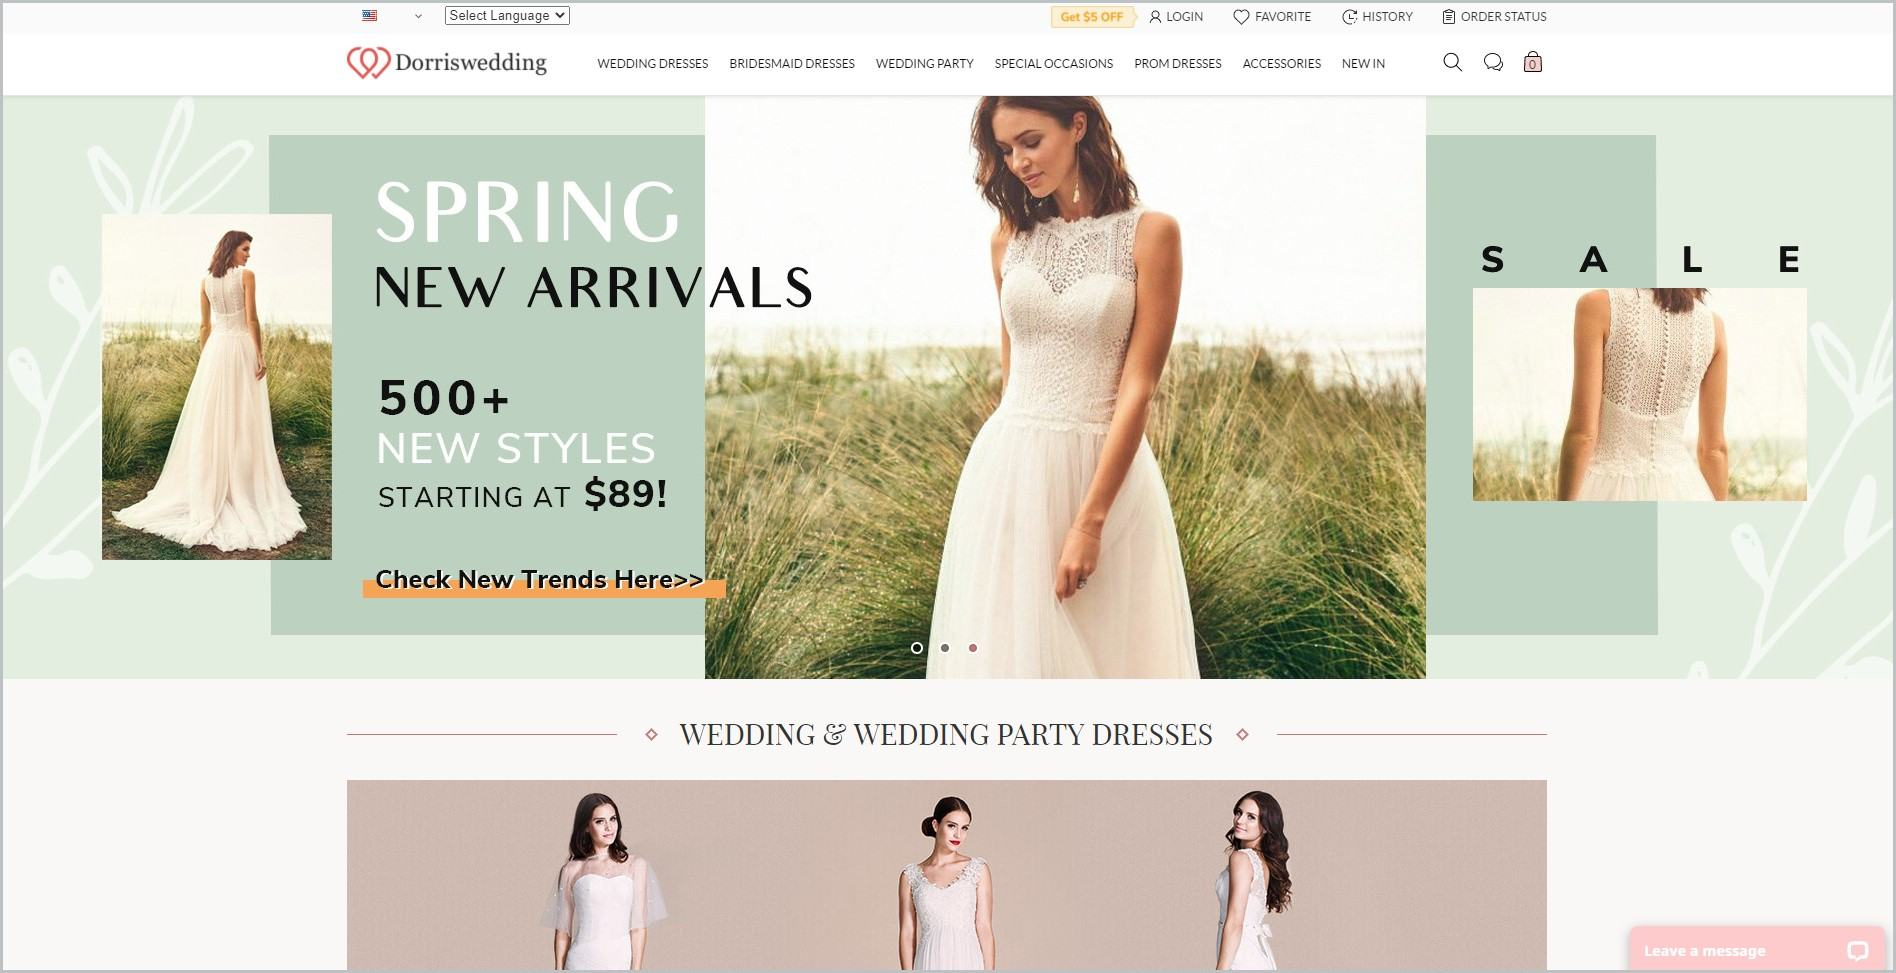 screenshot of Dorris Wedding homepage with white header bearing the website's name and the  main navigation menu, it also showcases pictures women modeling wedding dresses